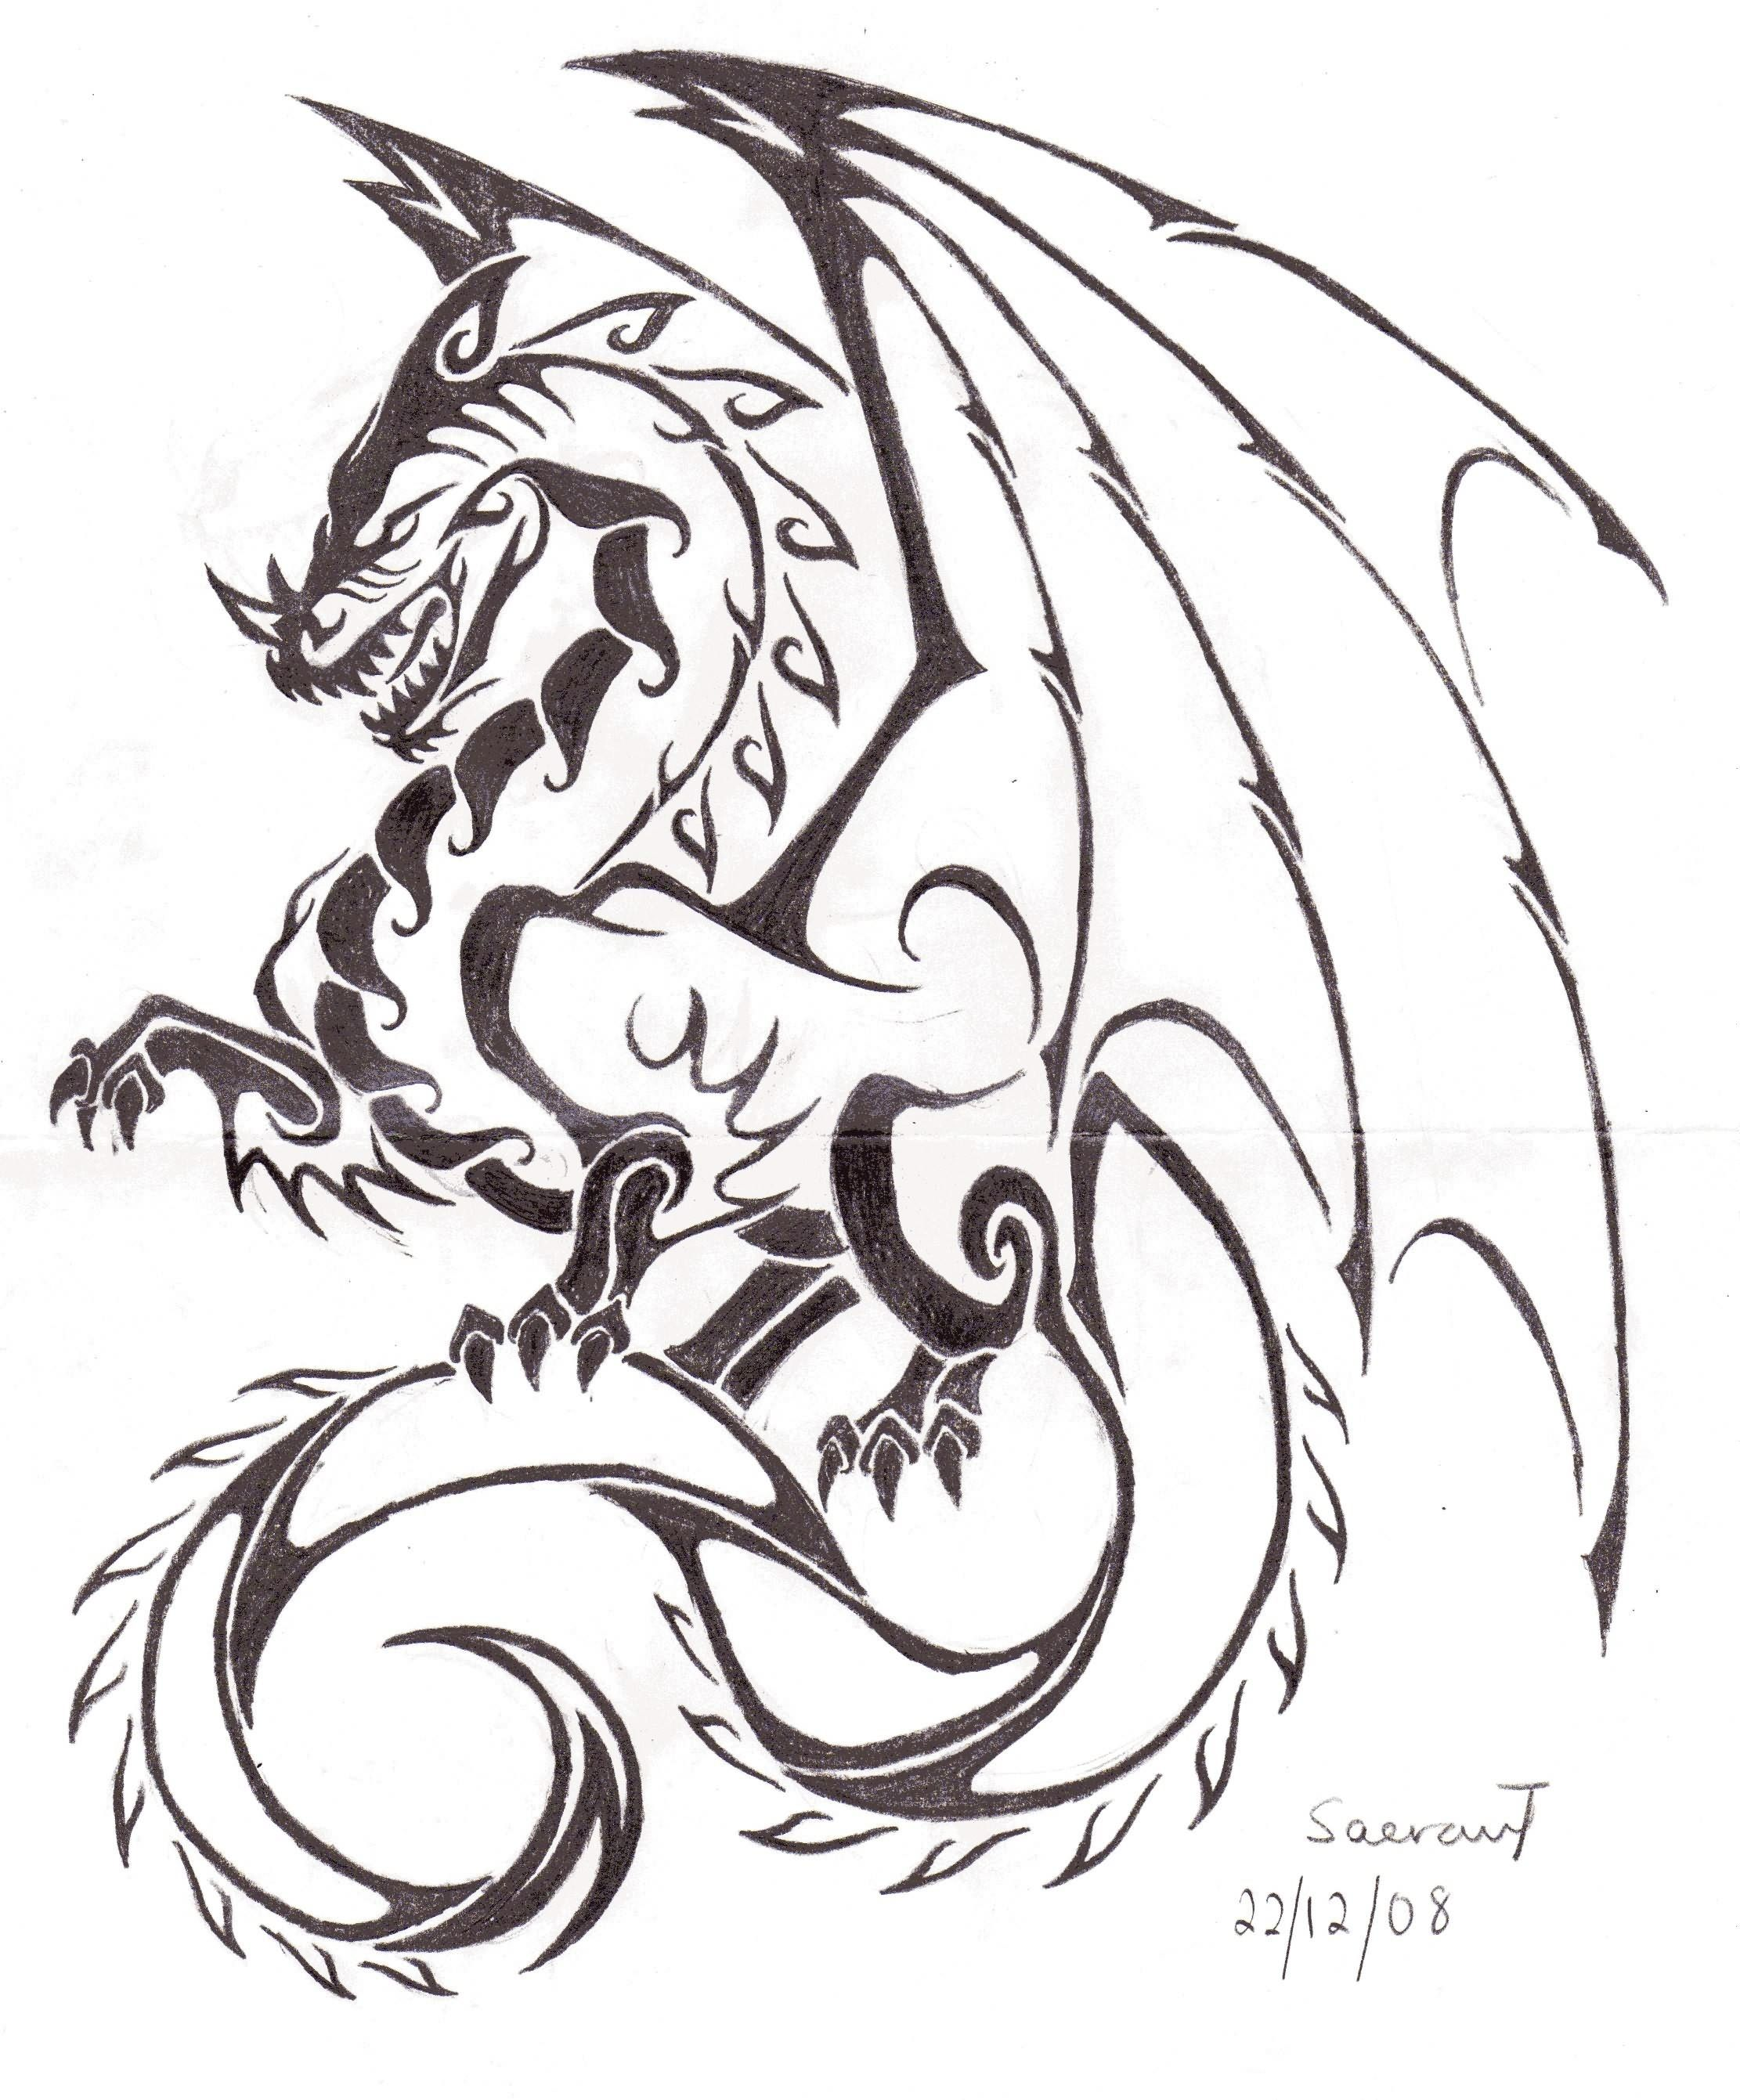 Welsh dragon tattoo designs - Find This Pin And More On Tattoo Ideas